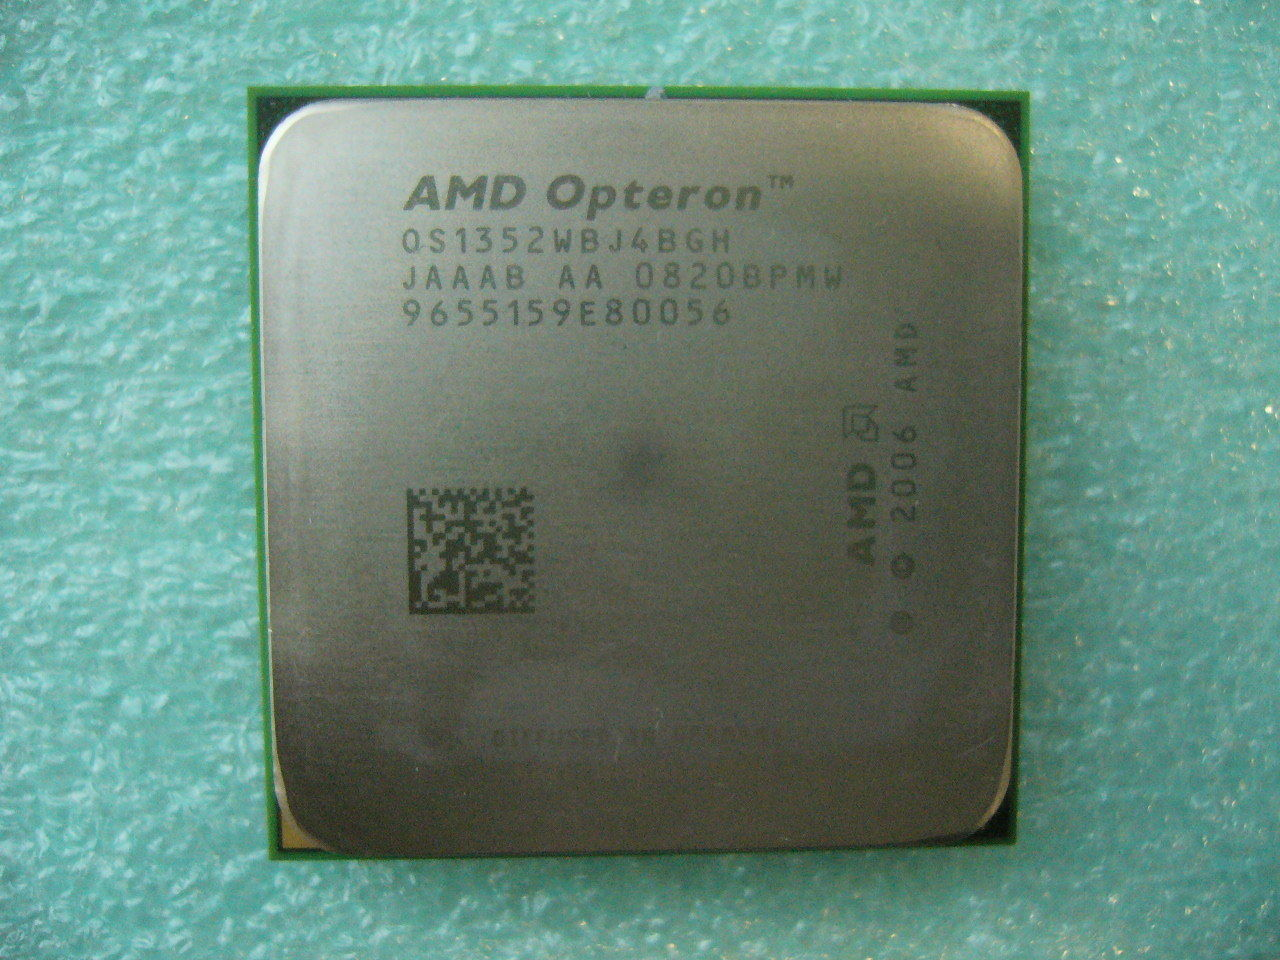 Menge 1x AMD Opteron CPU 2,1 GHz Quad-Core (OS1352WBJ4BGH) CPU AM2 + 940-Pin